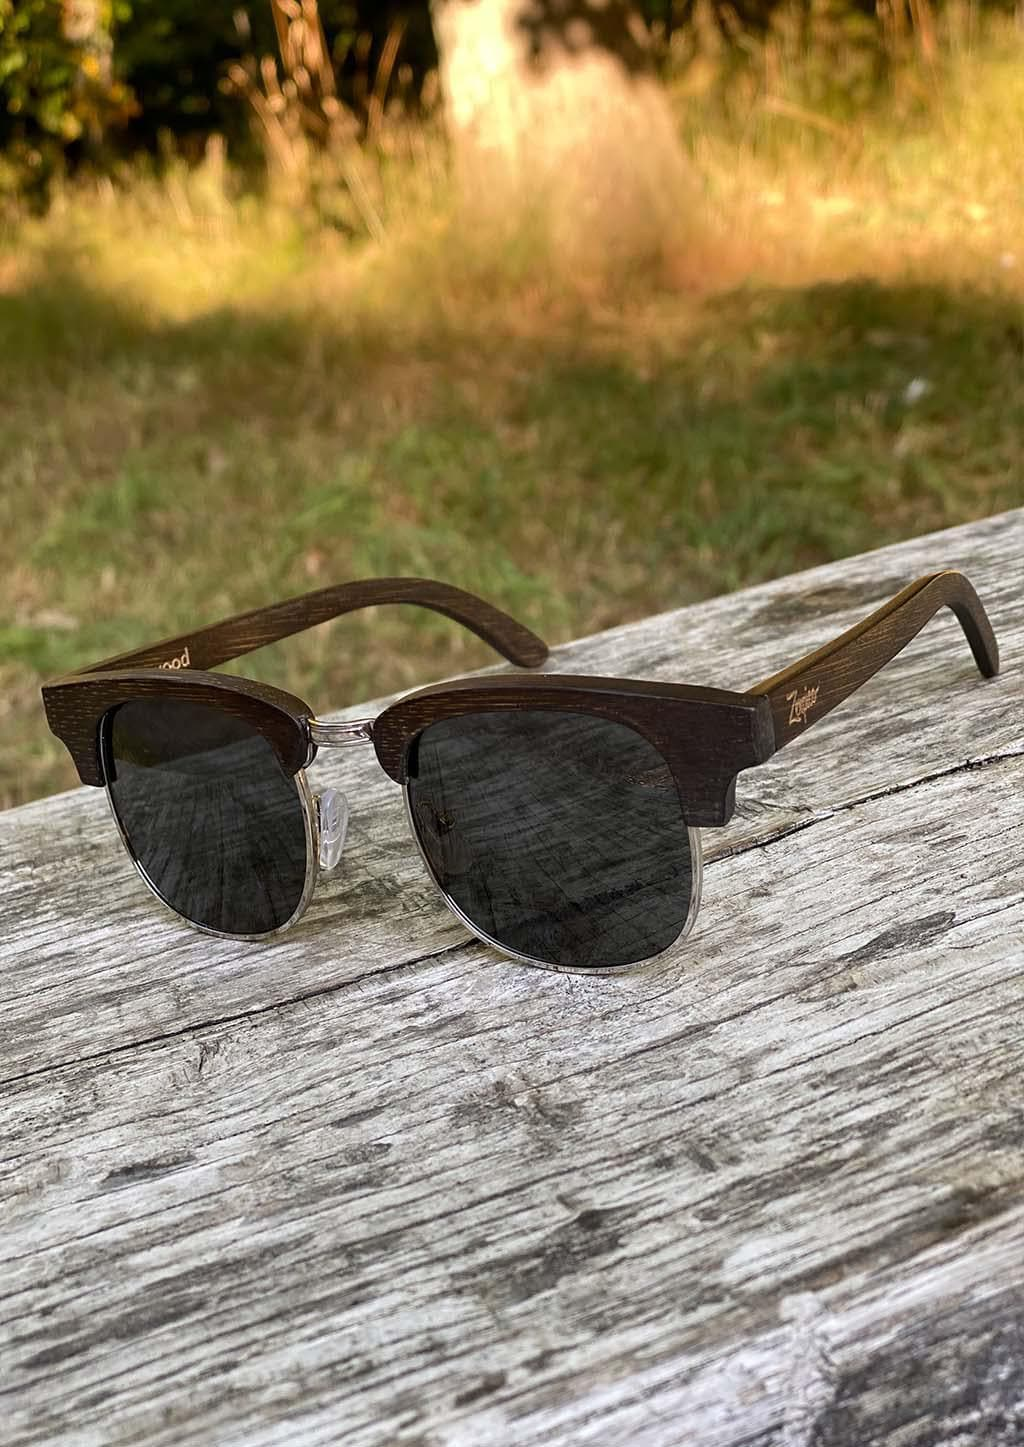 Eyewood Clubmasters is our cool take on classic model. This is Skyler with dark lenses. And also this model is made in all wood. Details in the sun.